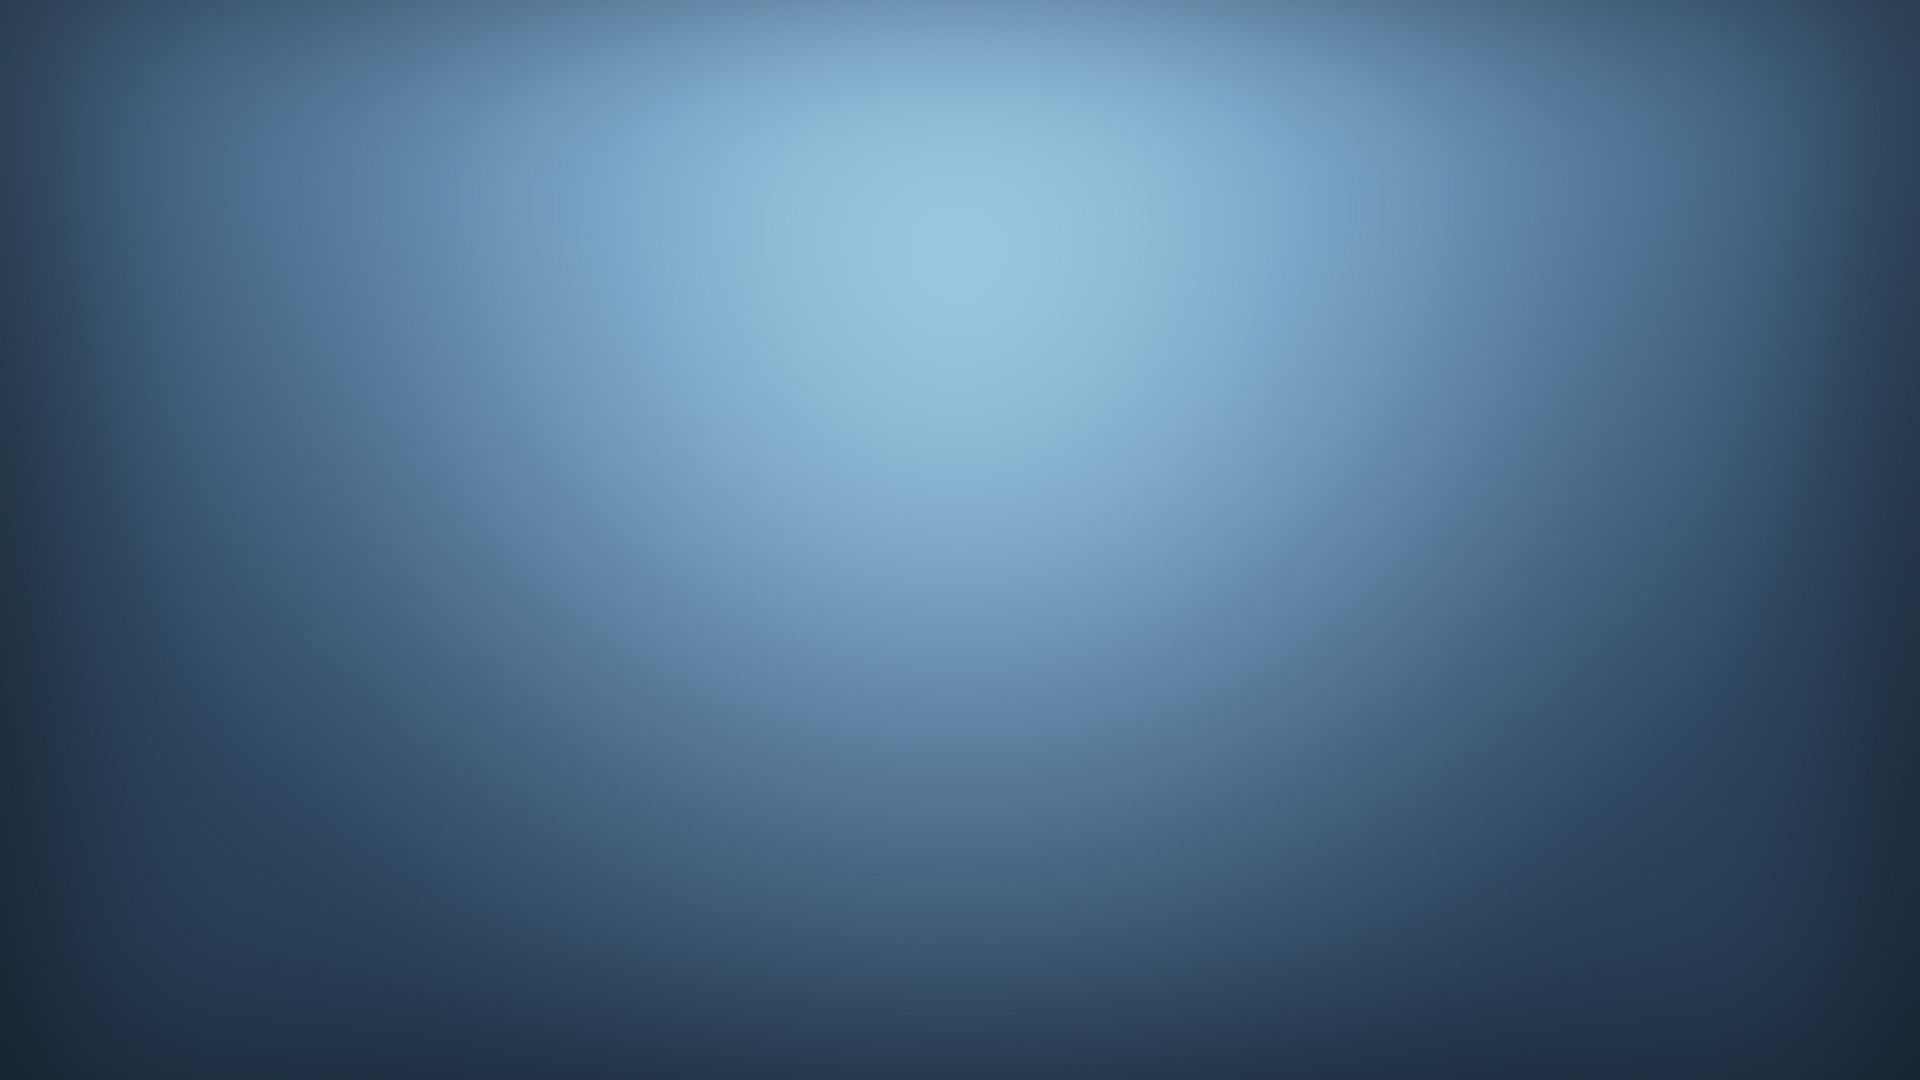 Simple Background Blue Gradient 1080p Wallpaper Hdwallpaper Desktop Background Hd Wallpaper Simple Wallpapers Plain Wallpaper